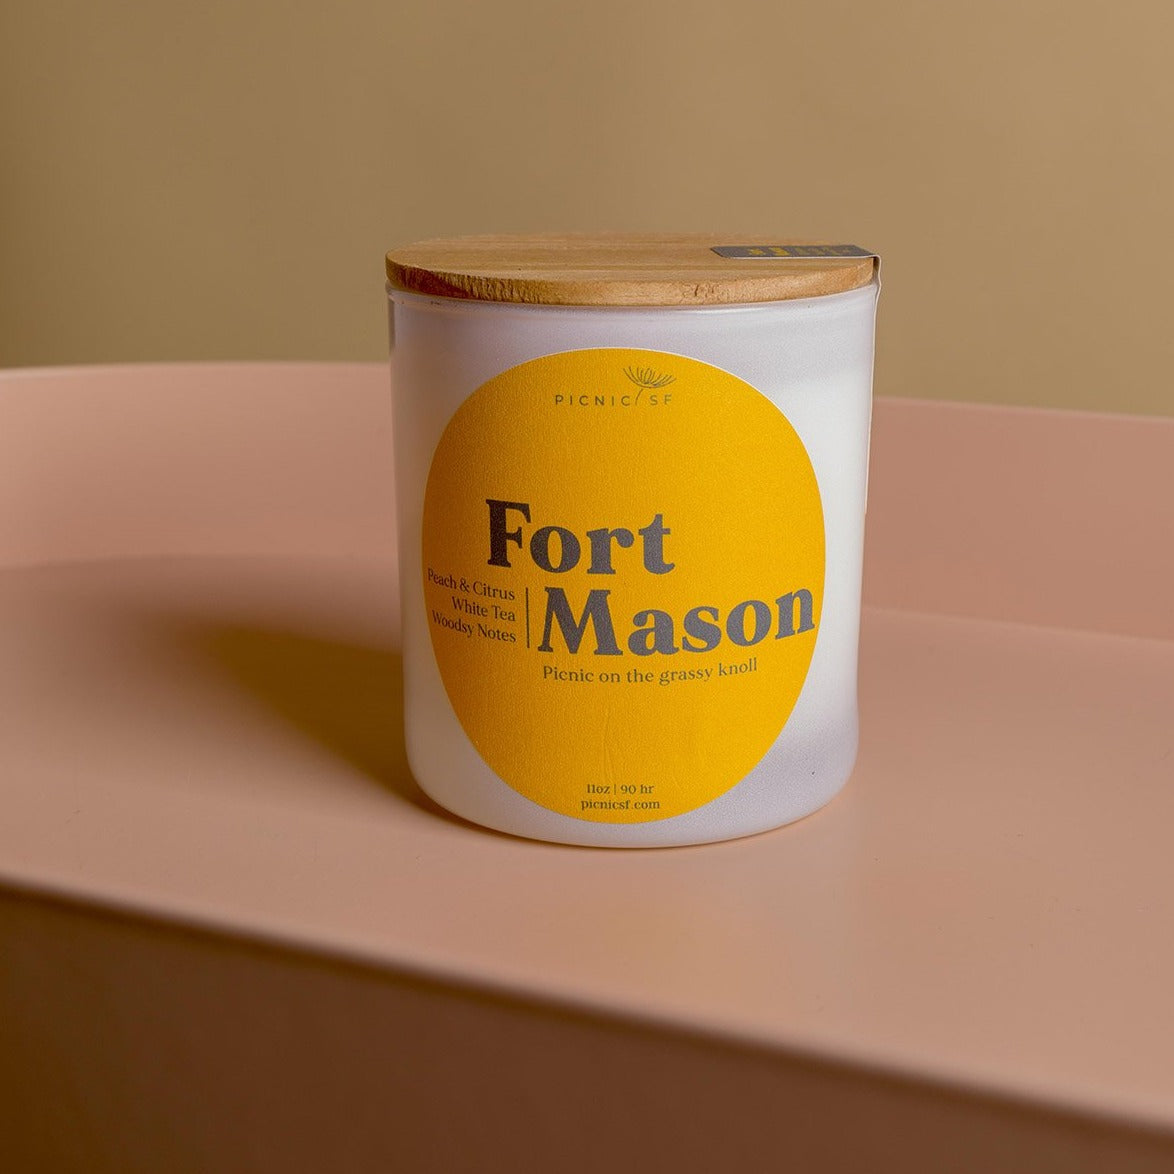 Fort Mason Candle. This Picnic exclusive San Francisco candle is available at Picnic SF.